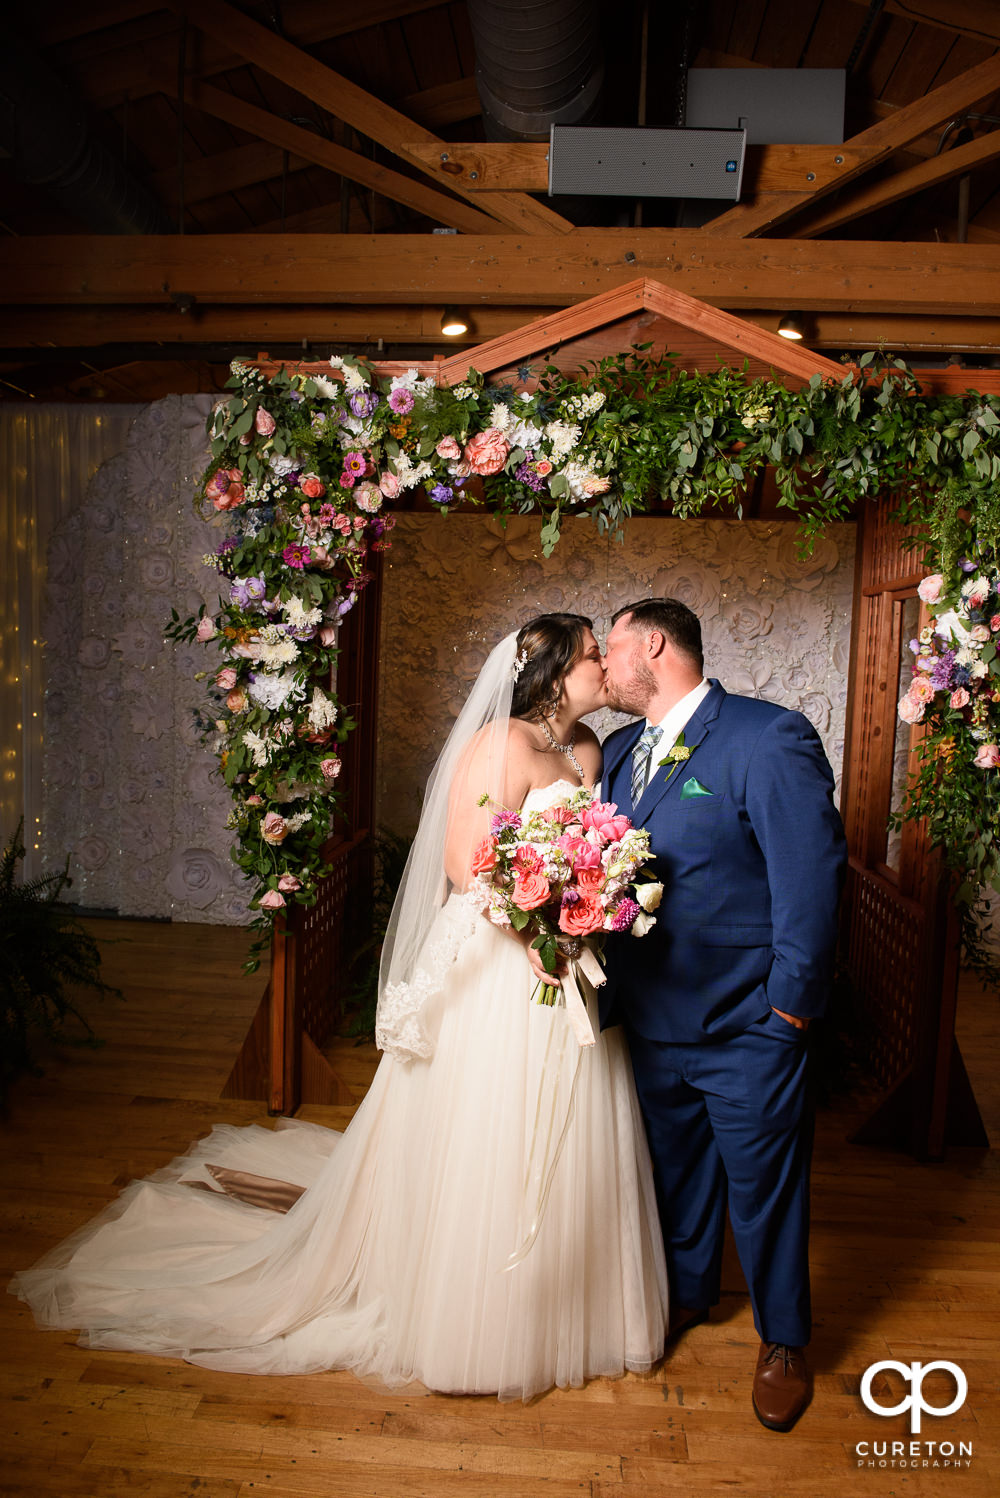 Bride and groom kissing under the arbor at their Huguenot Loft wedding.